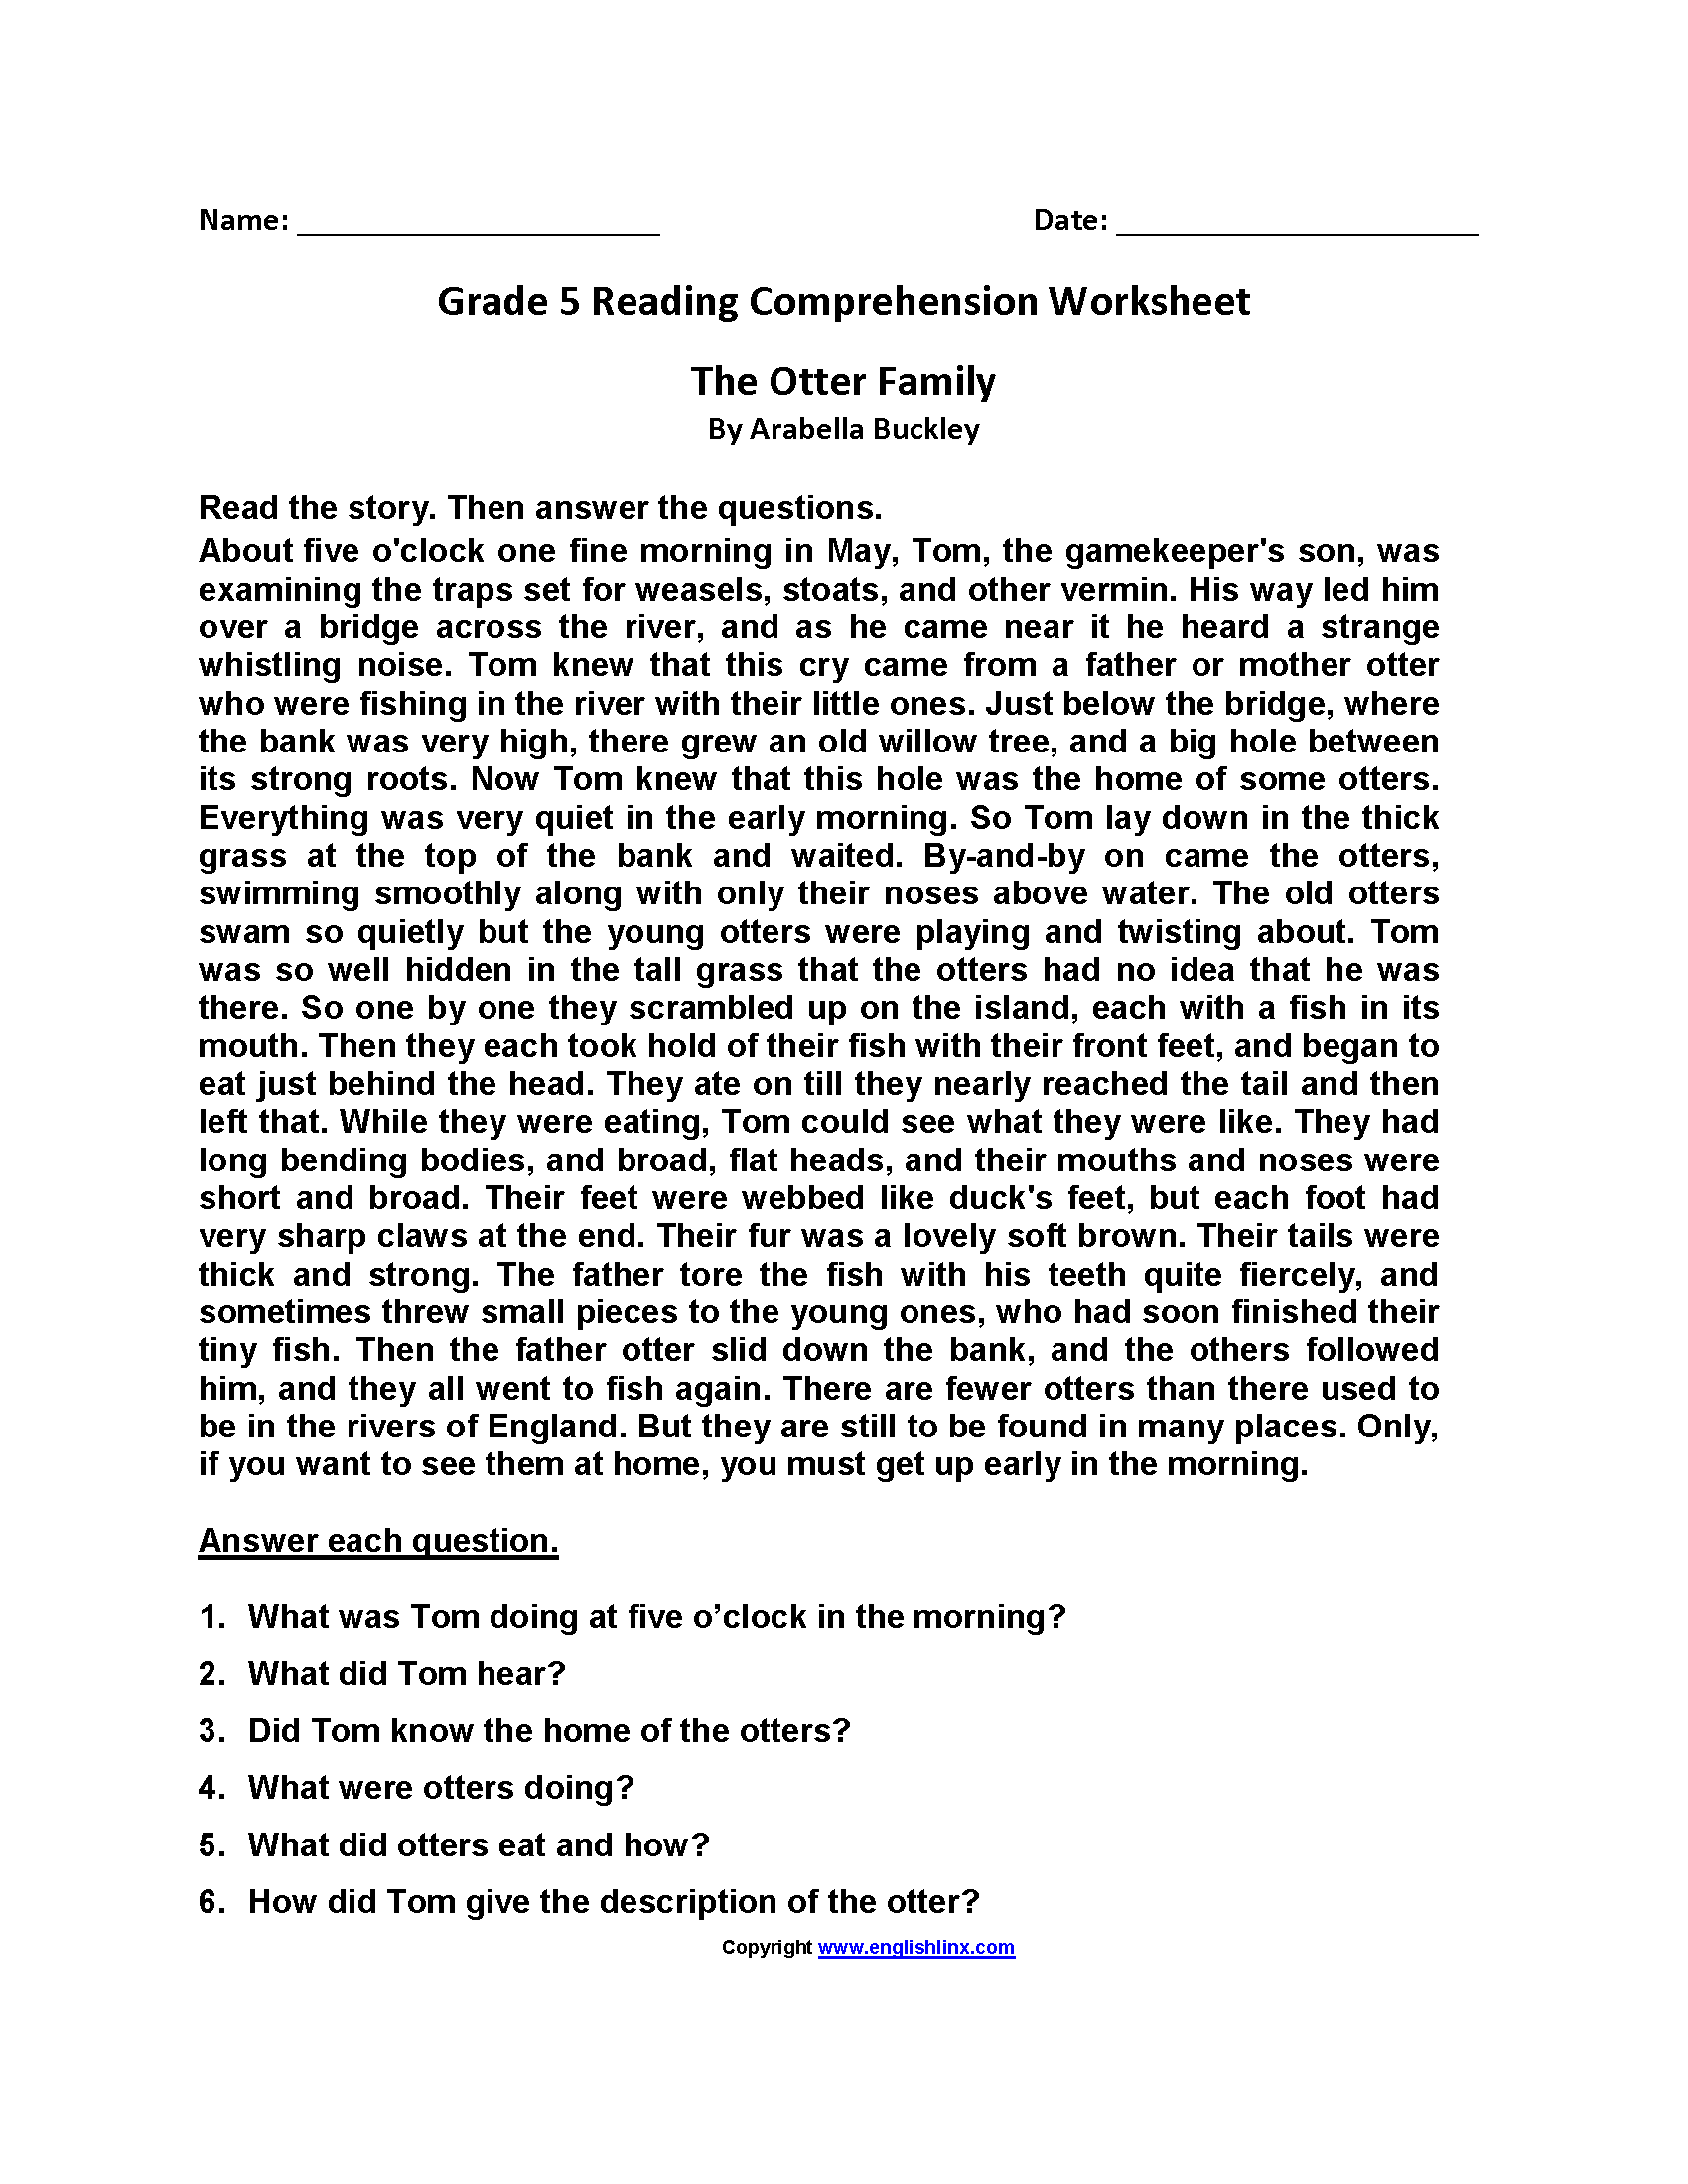 Worksheet Comprehension Worksheets For Grade 5 Worksheet Fun Worksheet Study Site